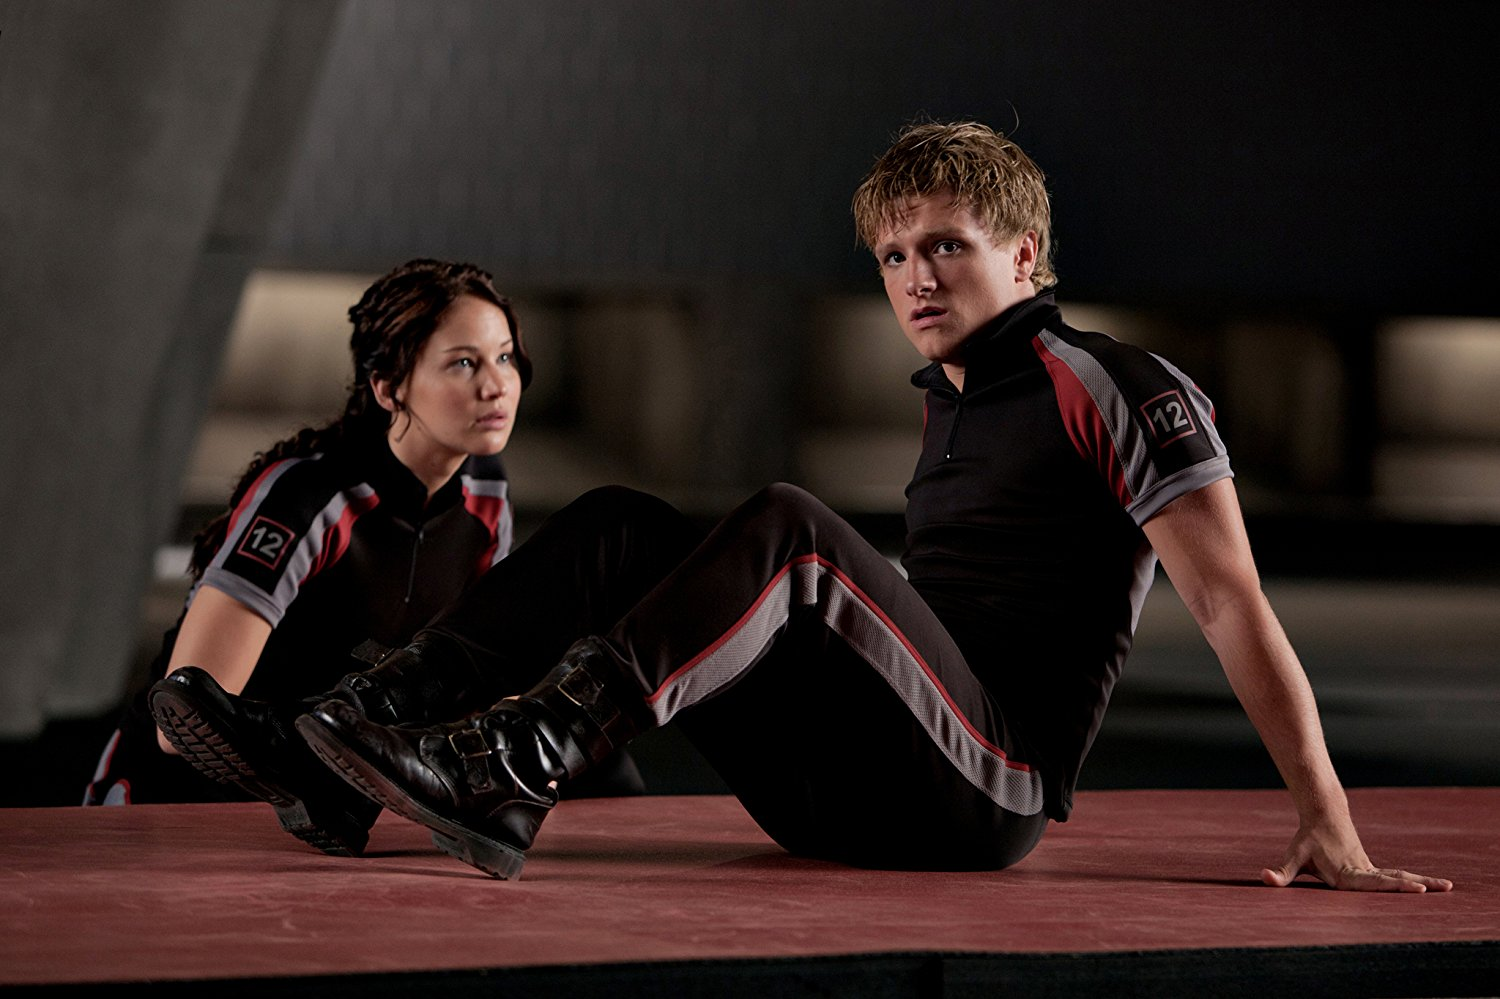 Jennifer Lawrence and Josh Hutcherson in The Hunger Games (2012)